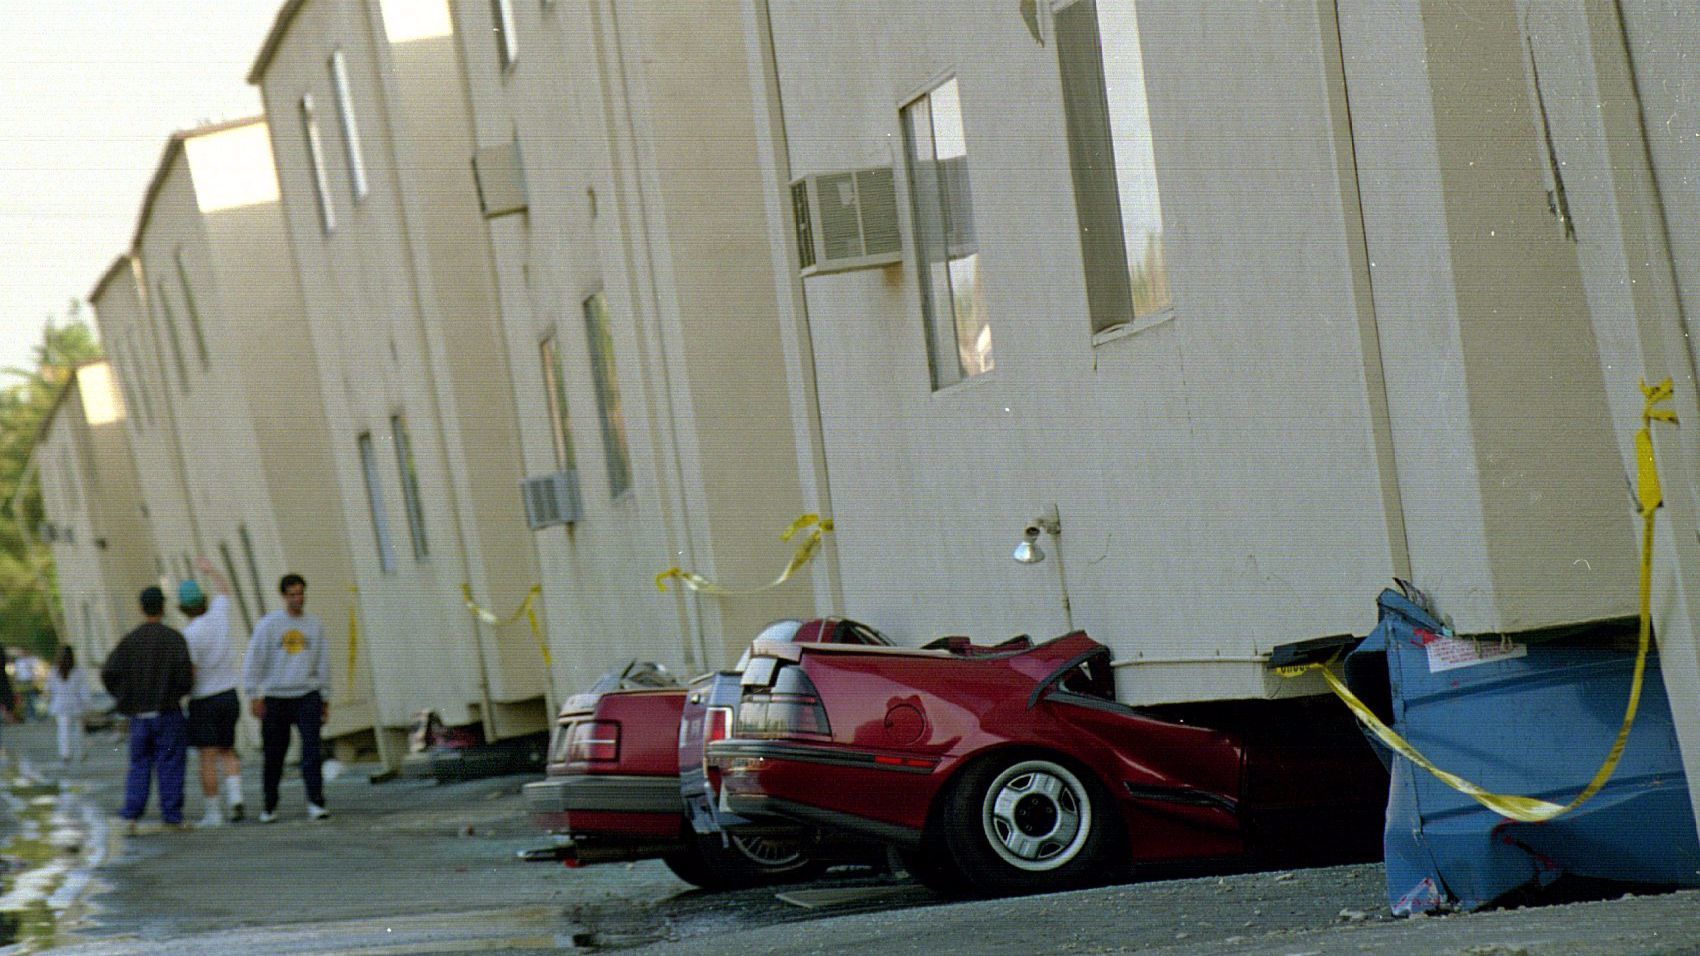 An apartment in Canoga Park on Victory Boulevard collapses on its flimsy ground story during the 1994 Northridge earthquake.